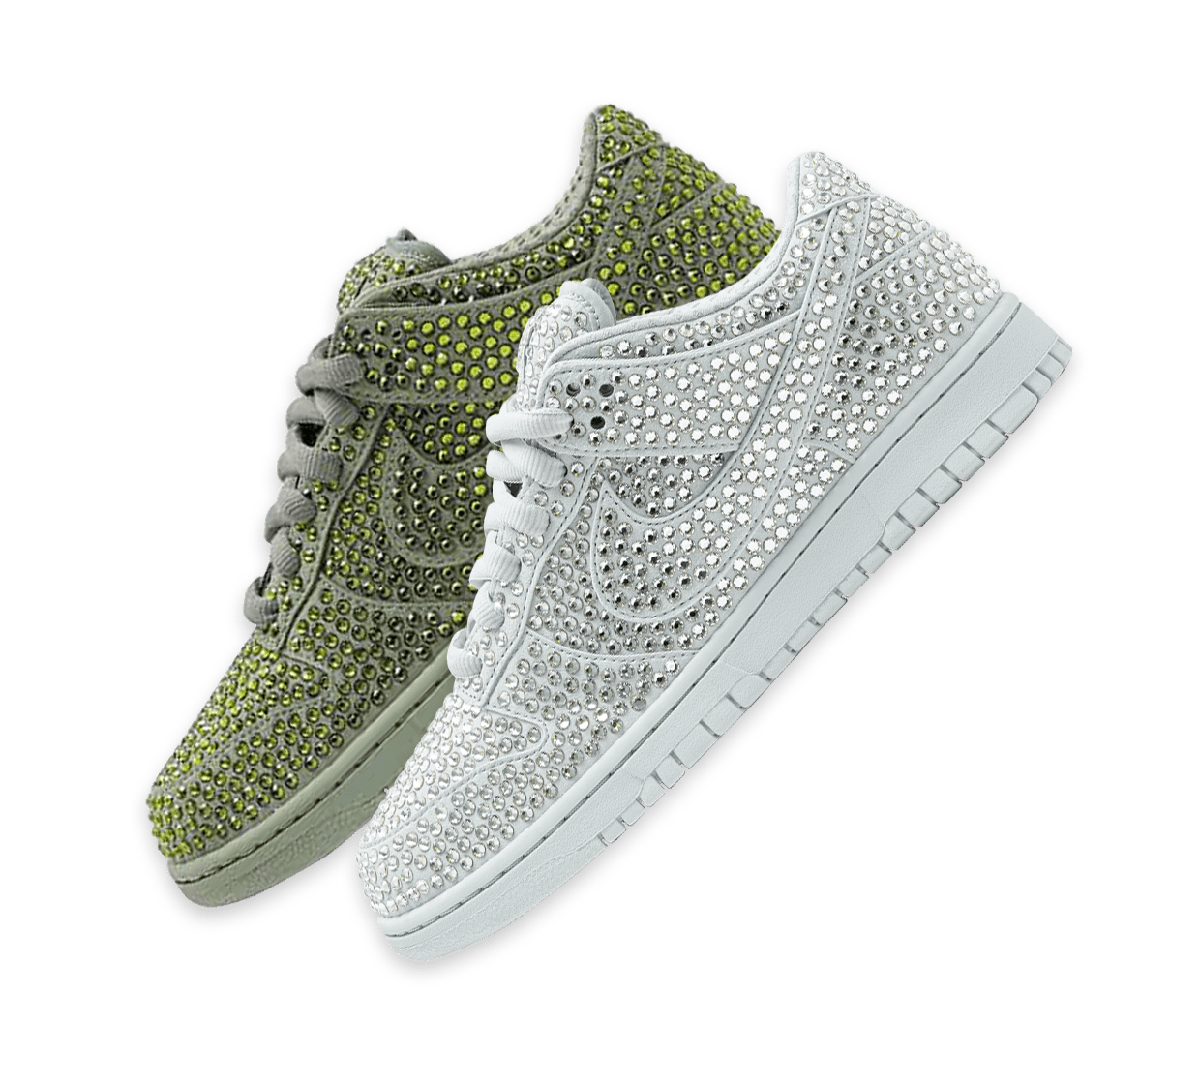 Nike Dunk Low CPFM Collection Image